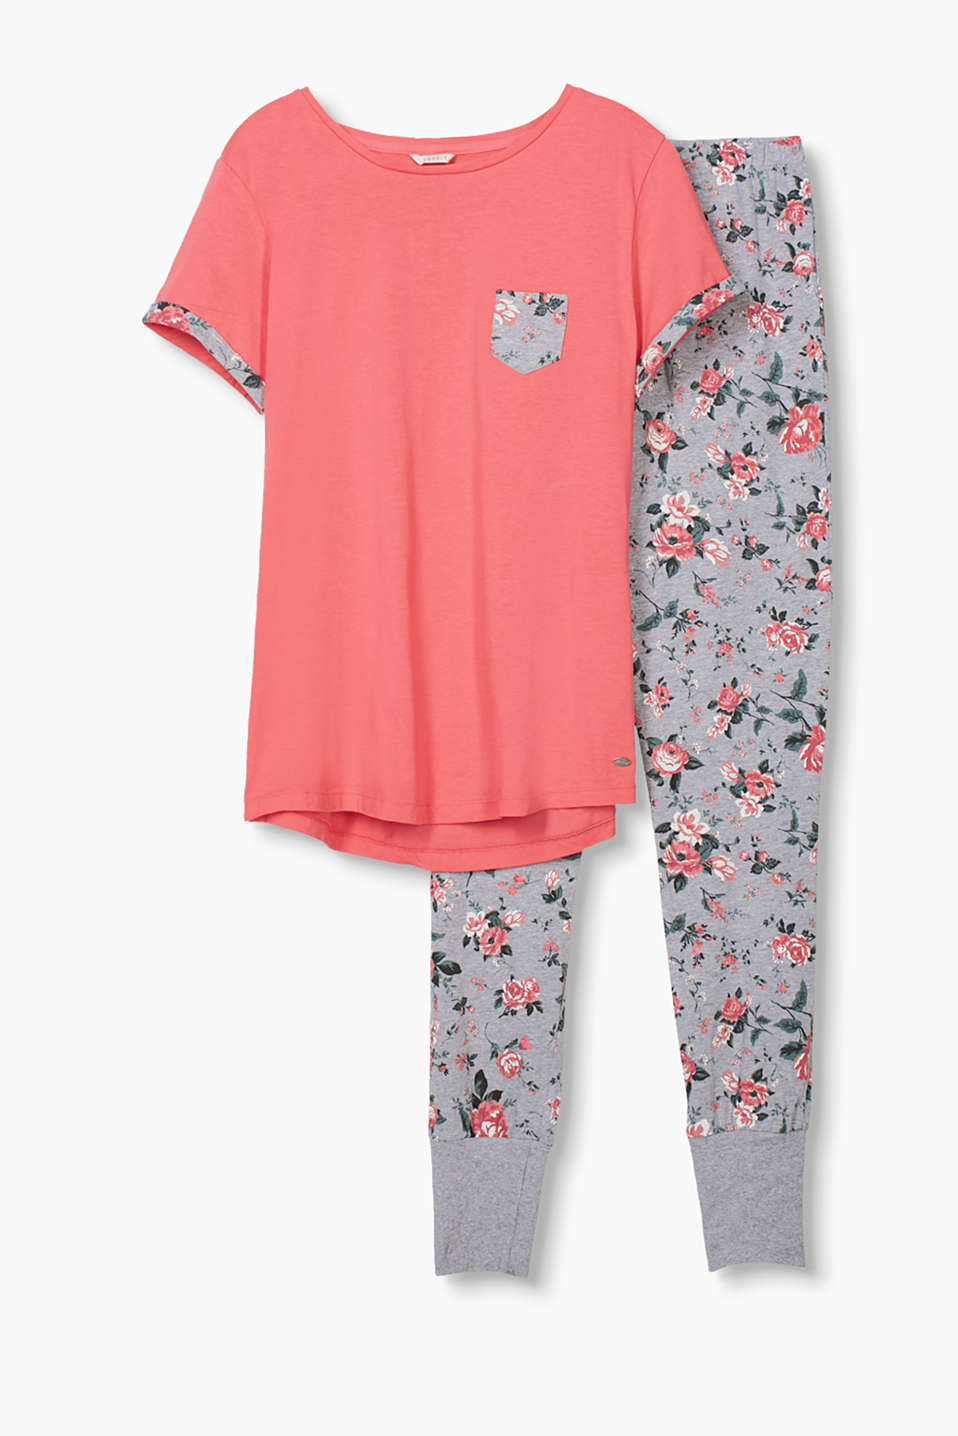 with a pretty rose print